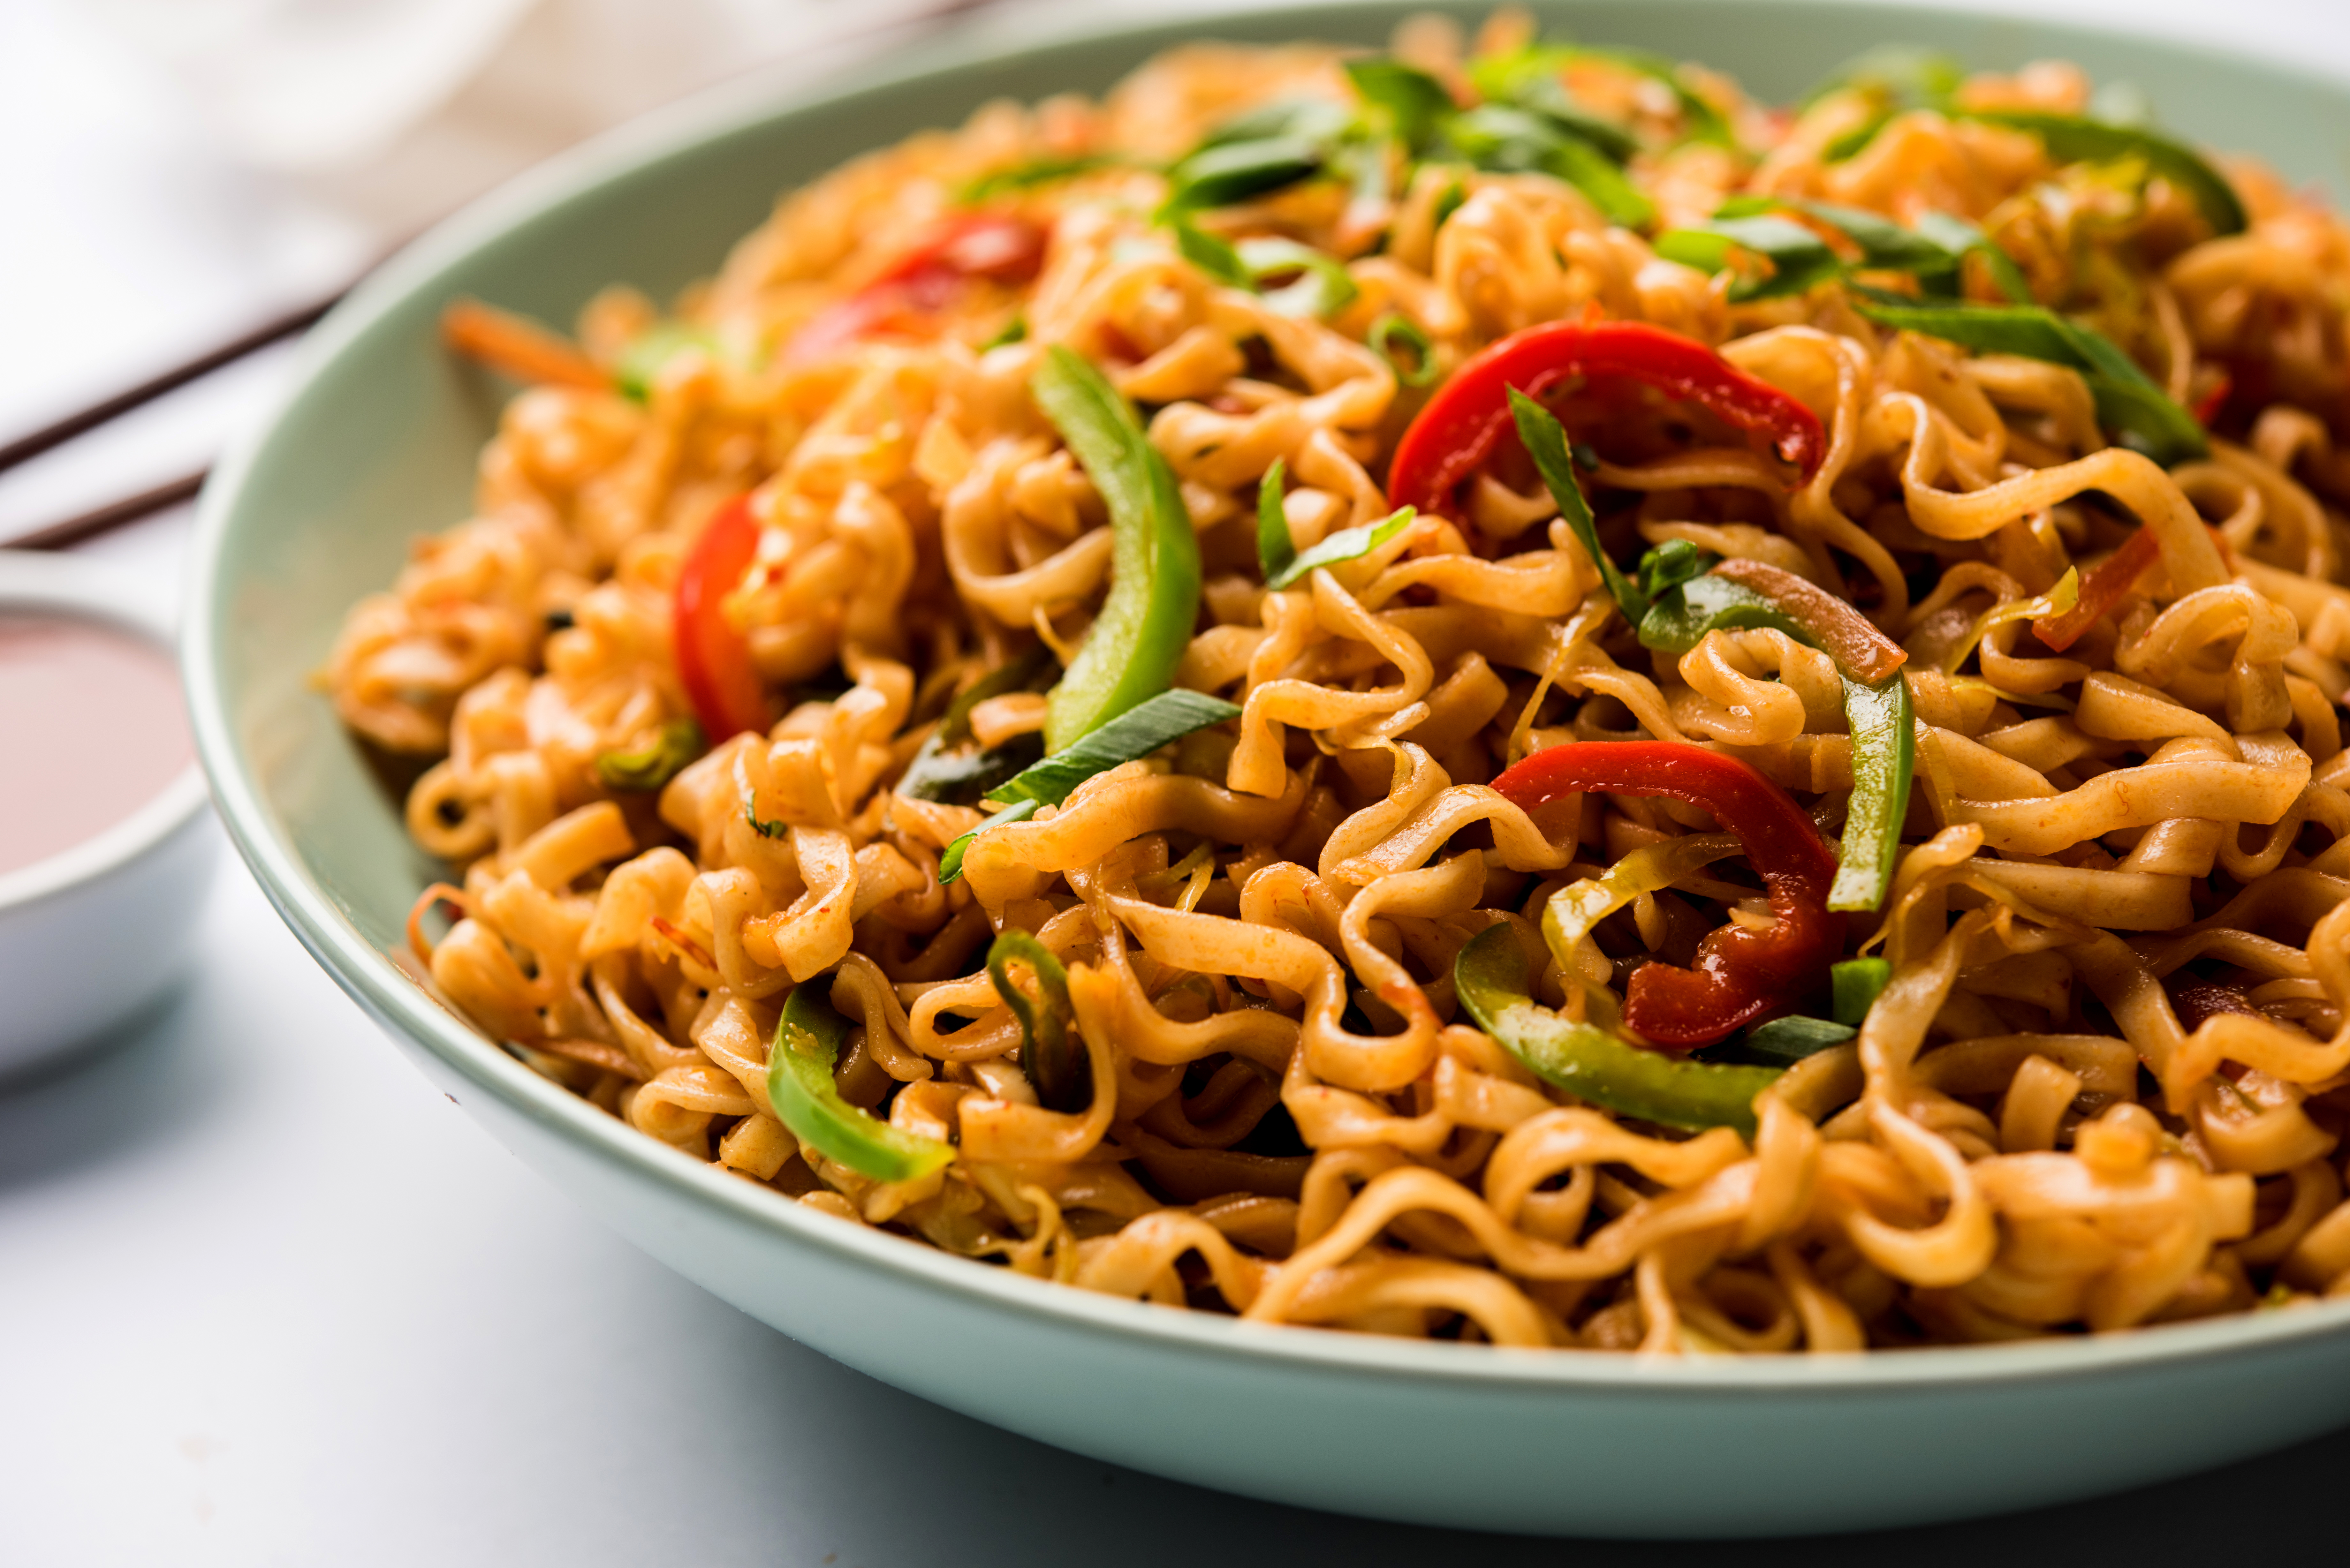 Healthy Veggie Noodle Recipe to Try This Summer